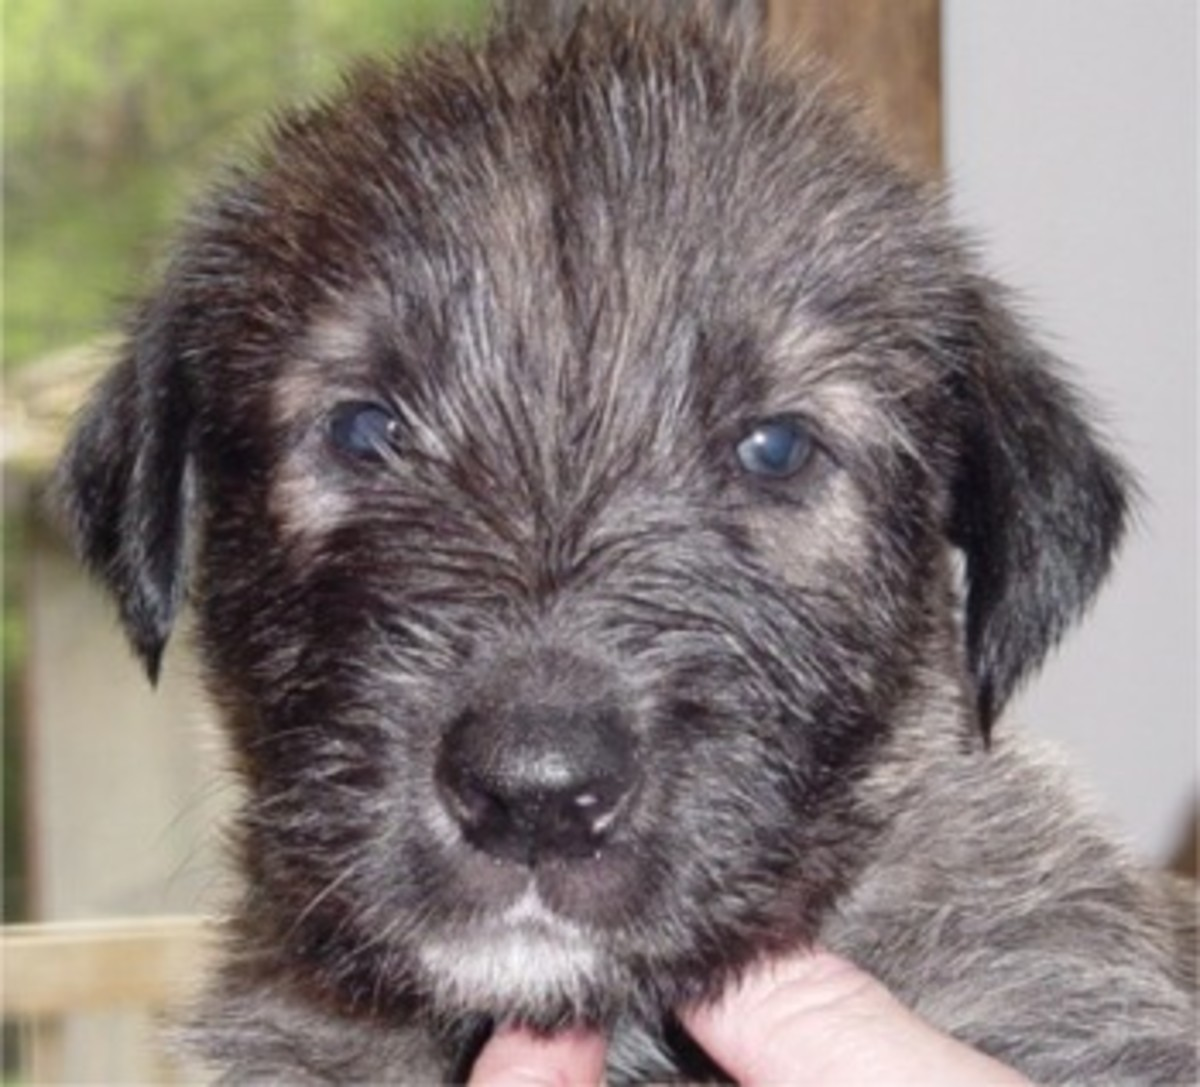 An Irish Wolfhound puppy.